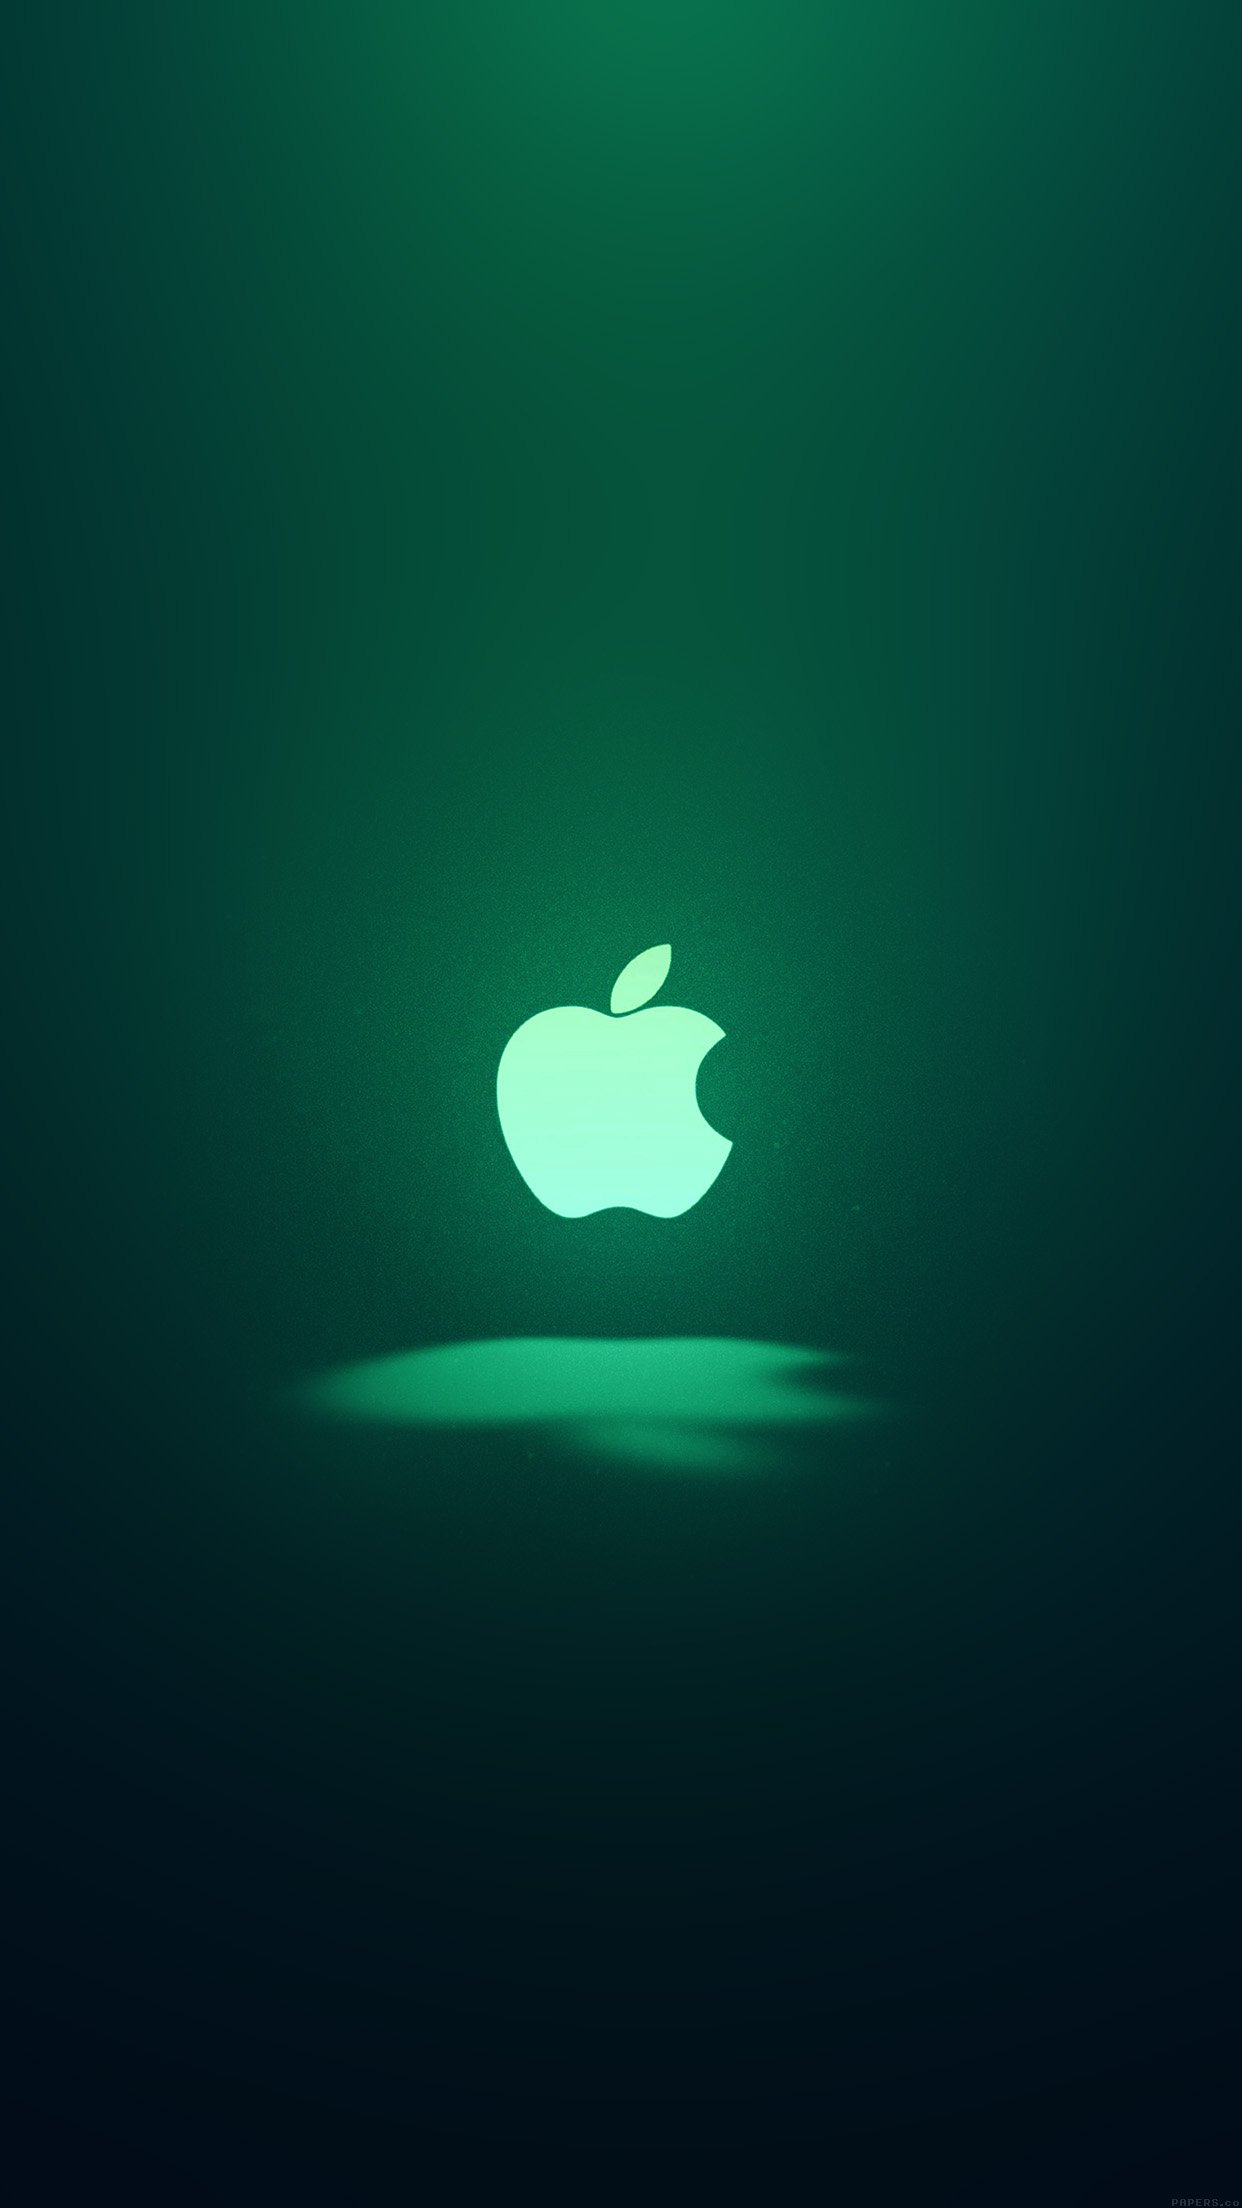 Apple Logo Love Mania Green Android wallpaper